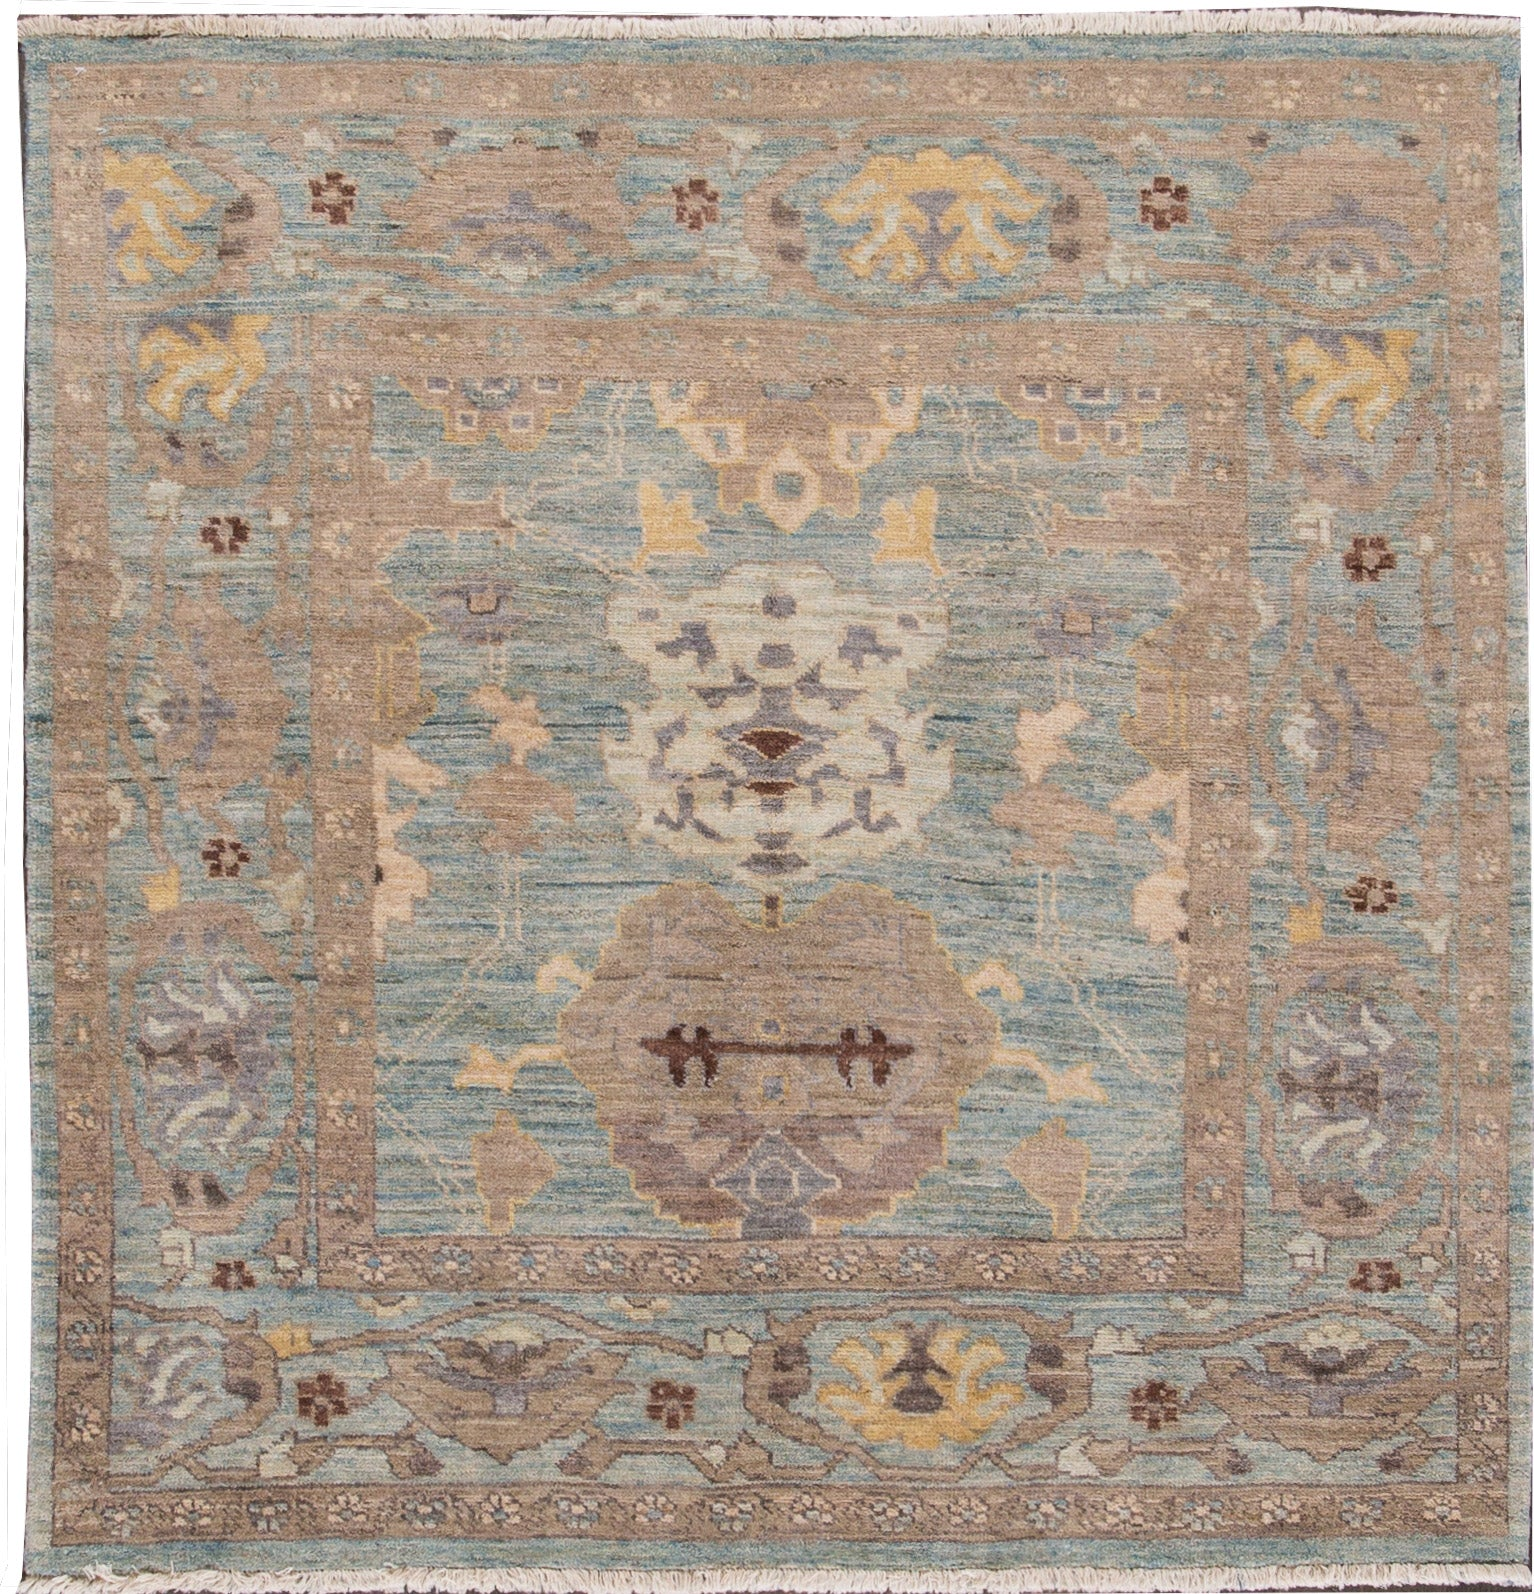 Sultanabad Rug, 5' X 5'